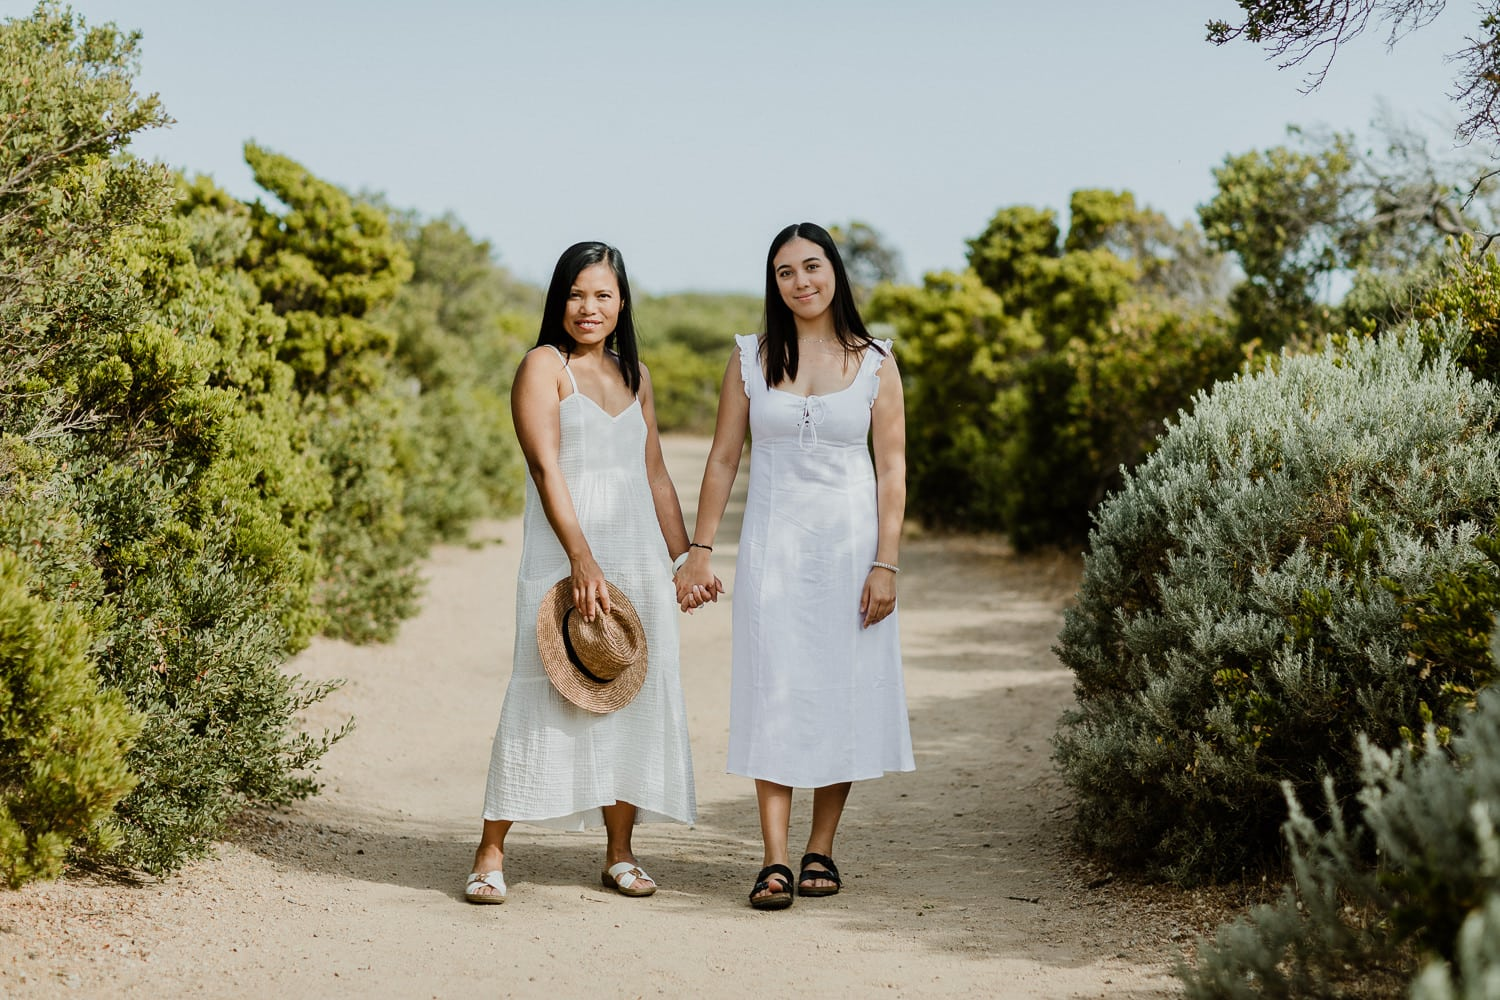 mum and daughter on location photoshoot